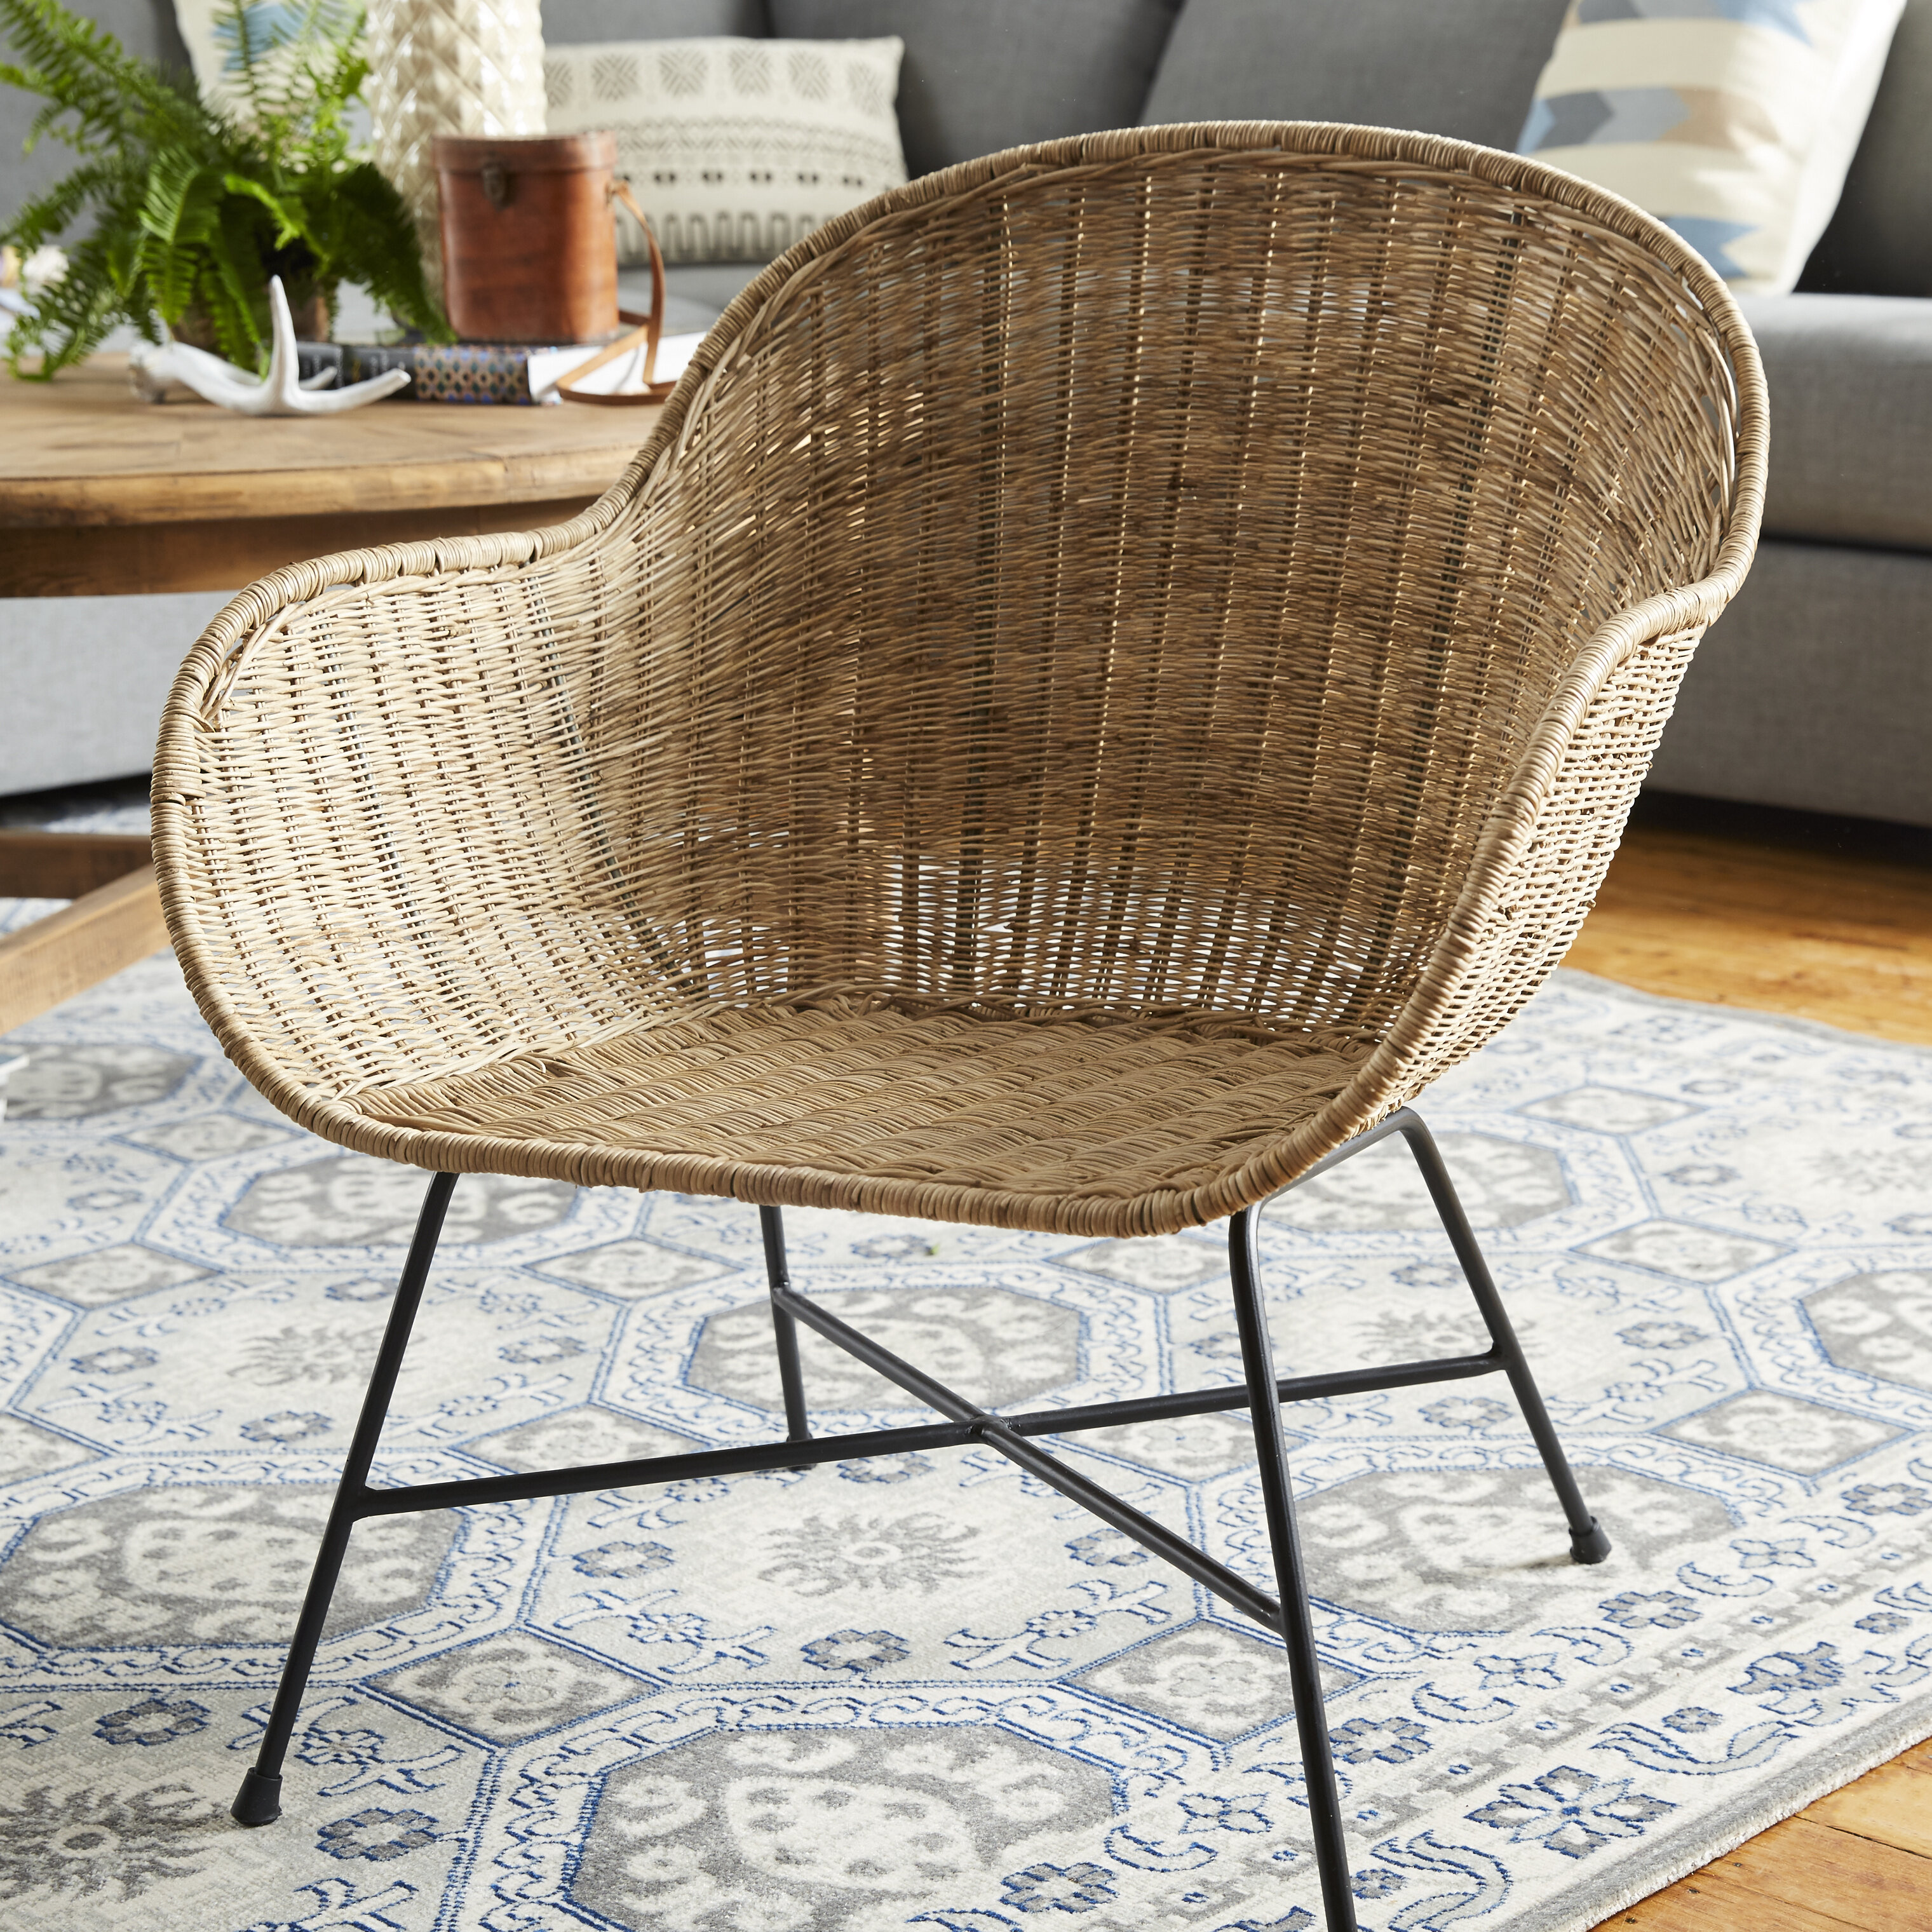 Tremendous Ormond Barrel Chair Bralicious Painted Fabric Chair Ideas Braliciousco